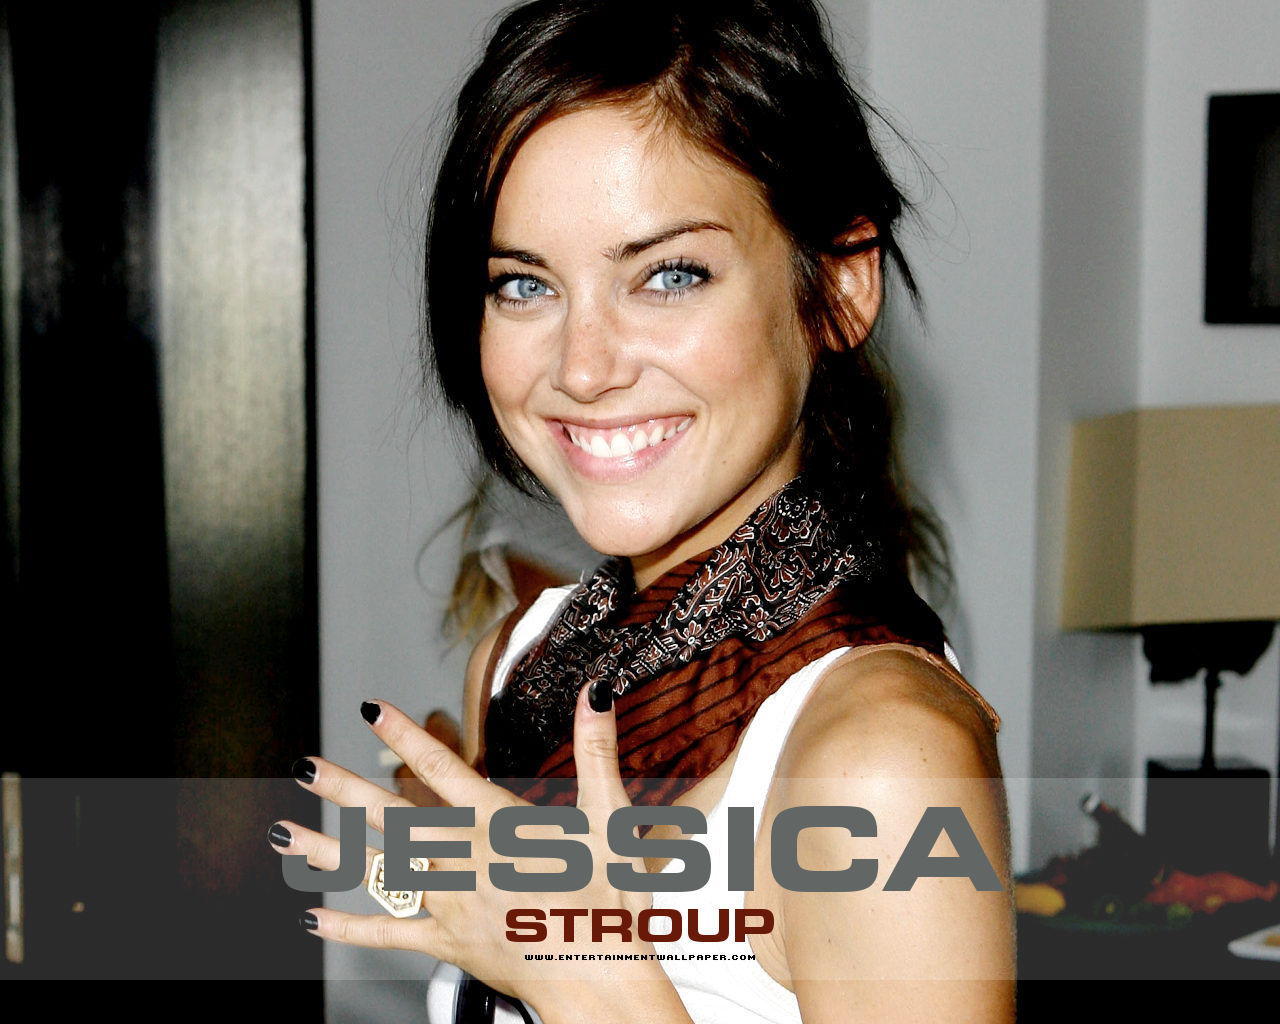 1280x1024 - Jessica Stroup Wallpapers 32